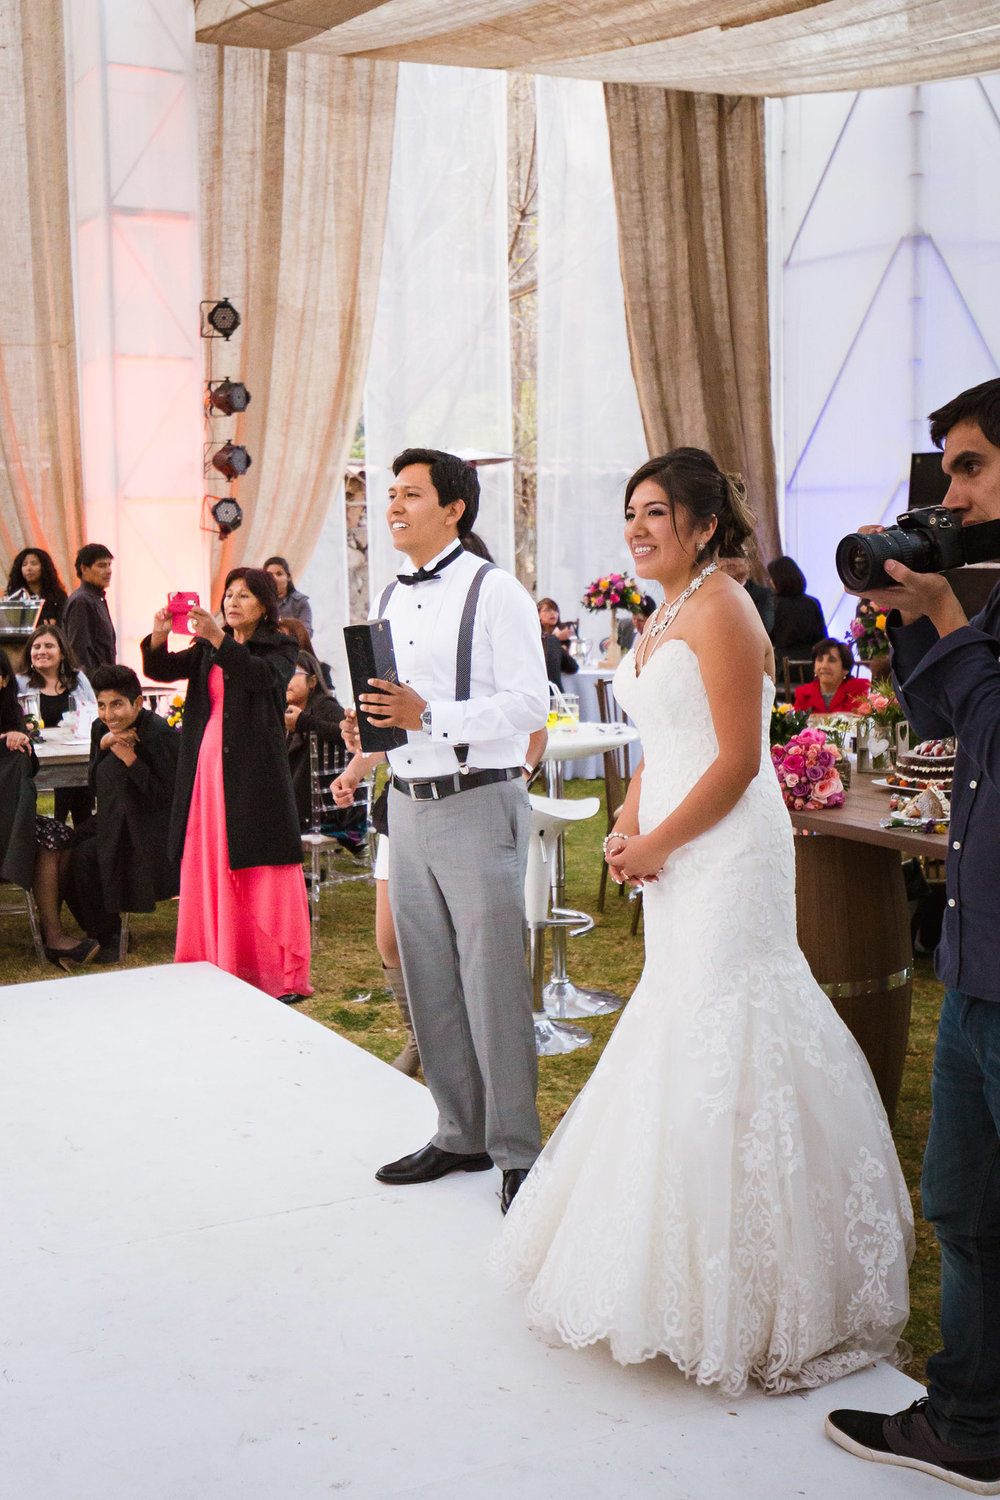 Wedding-Travellers-Destination-Wedding-Peru-Cusco-Hacienda-Sarapampa-Sacred-Valley-toss-beer